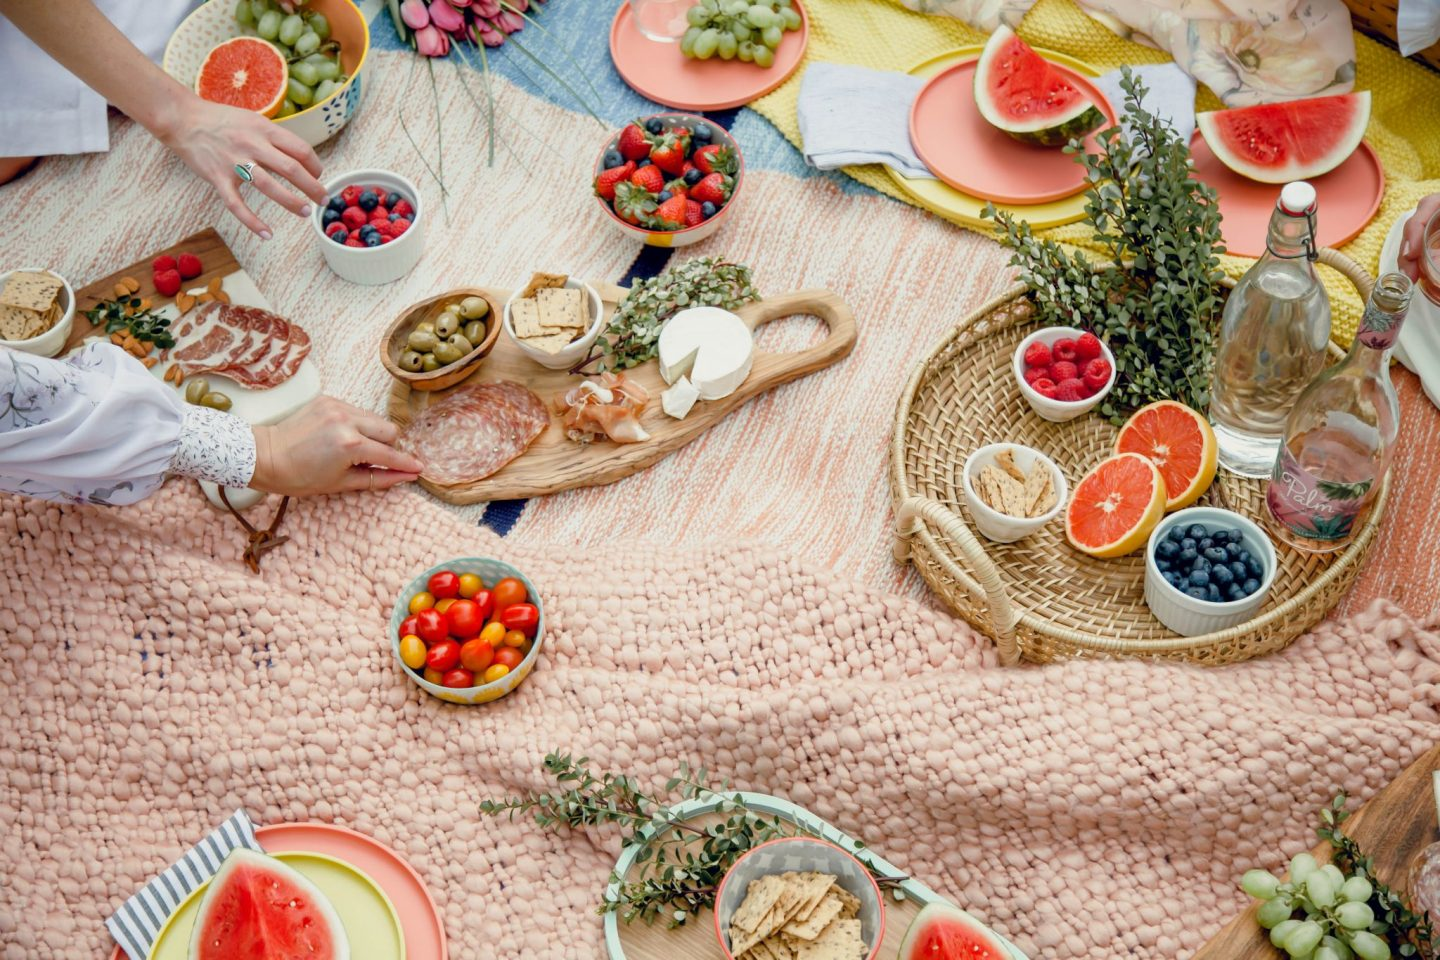 How to Host The Perfect Picnic - Lauren Schwaiger Lifestyle Blog